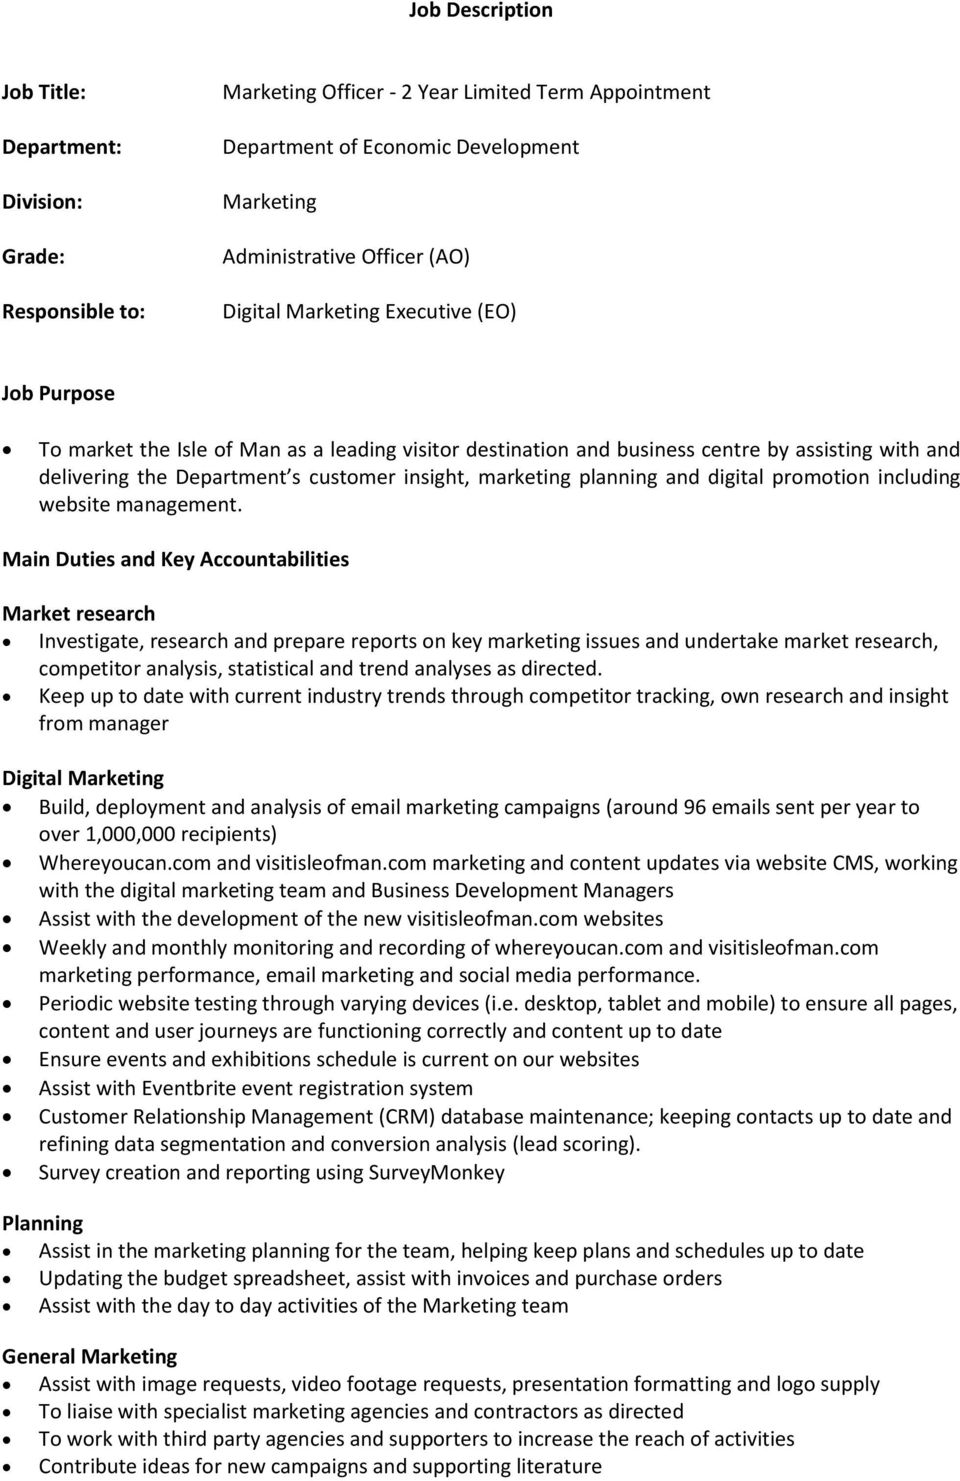 Marketing Officer Job Description | Job Description Marketing Officer 2 Year Limited Term Appointment